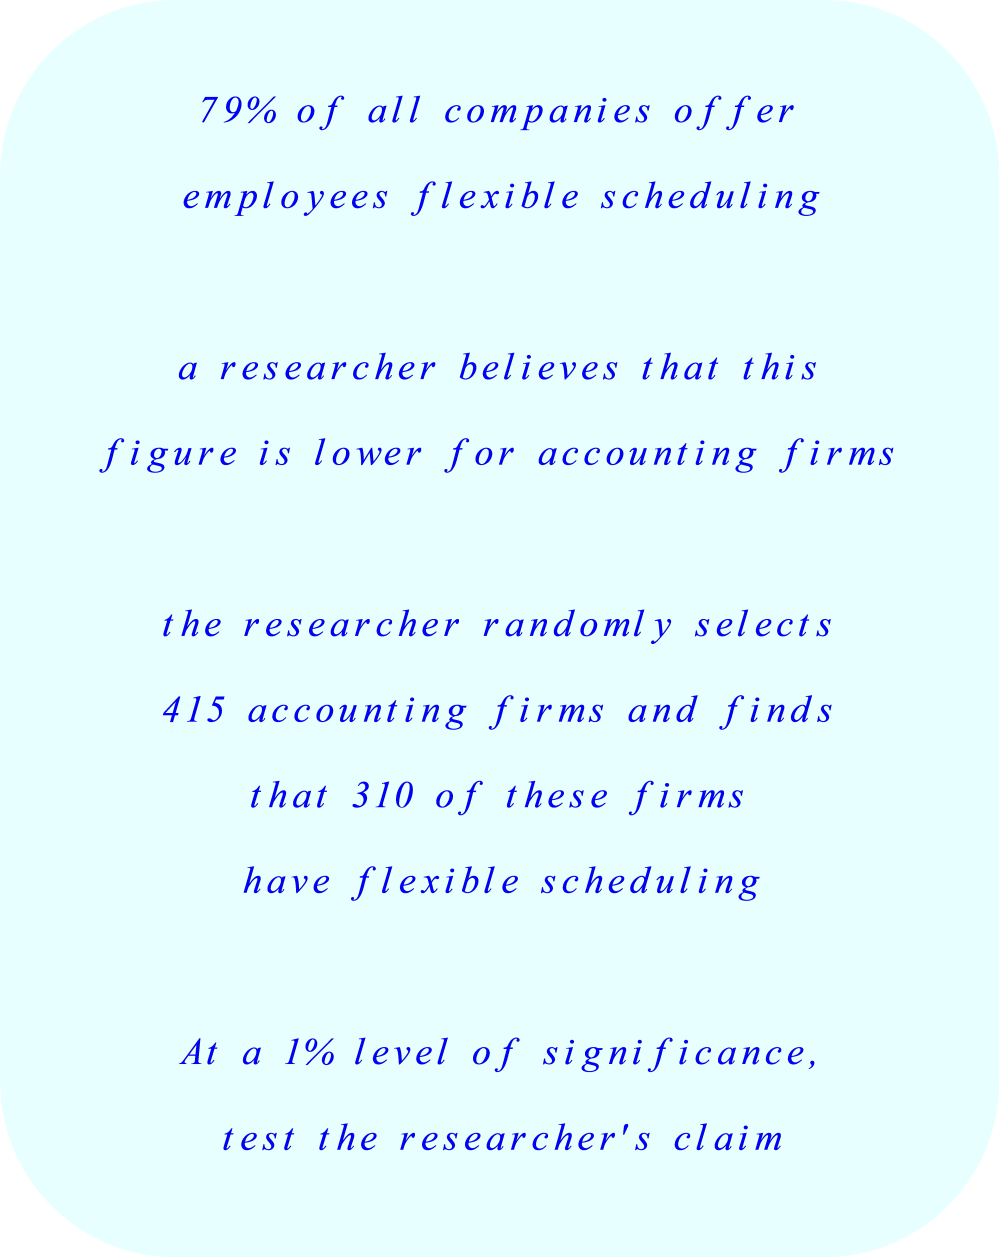 Test the 1% level of significance for flexible scheduling.